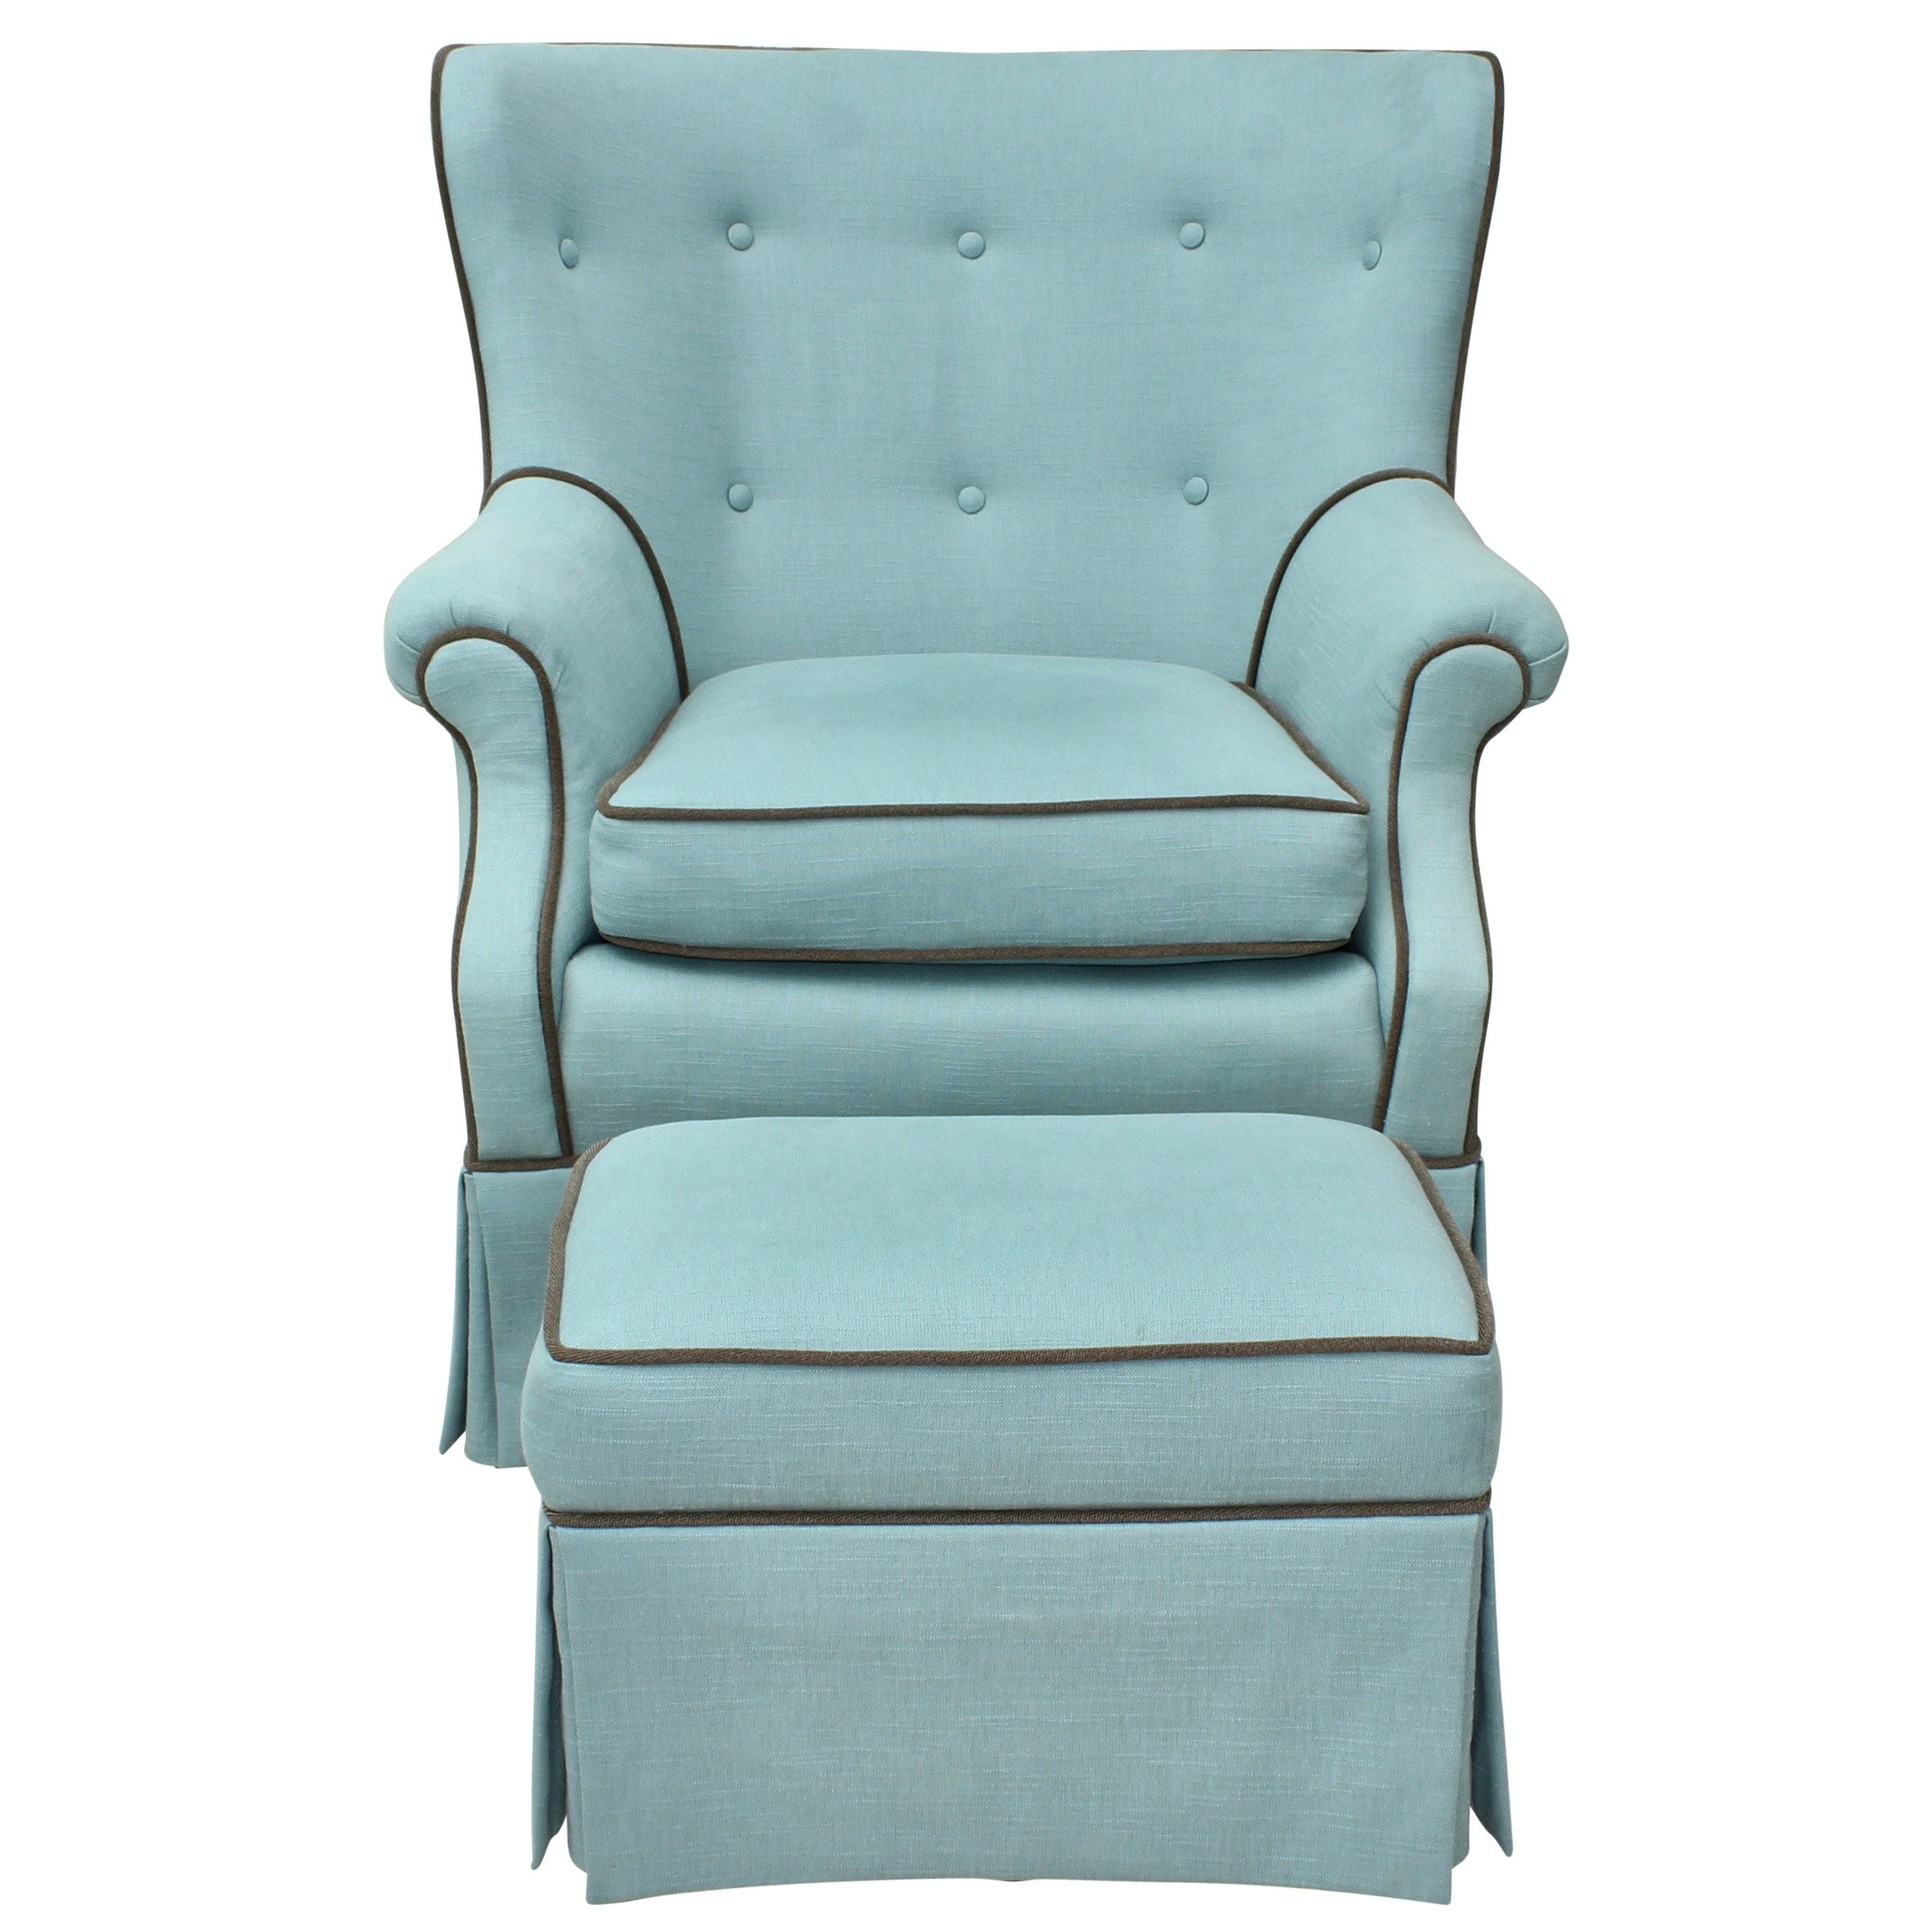 Tufted Upholstered Armchair and Ottoman